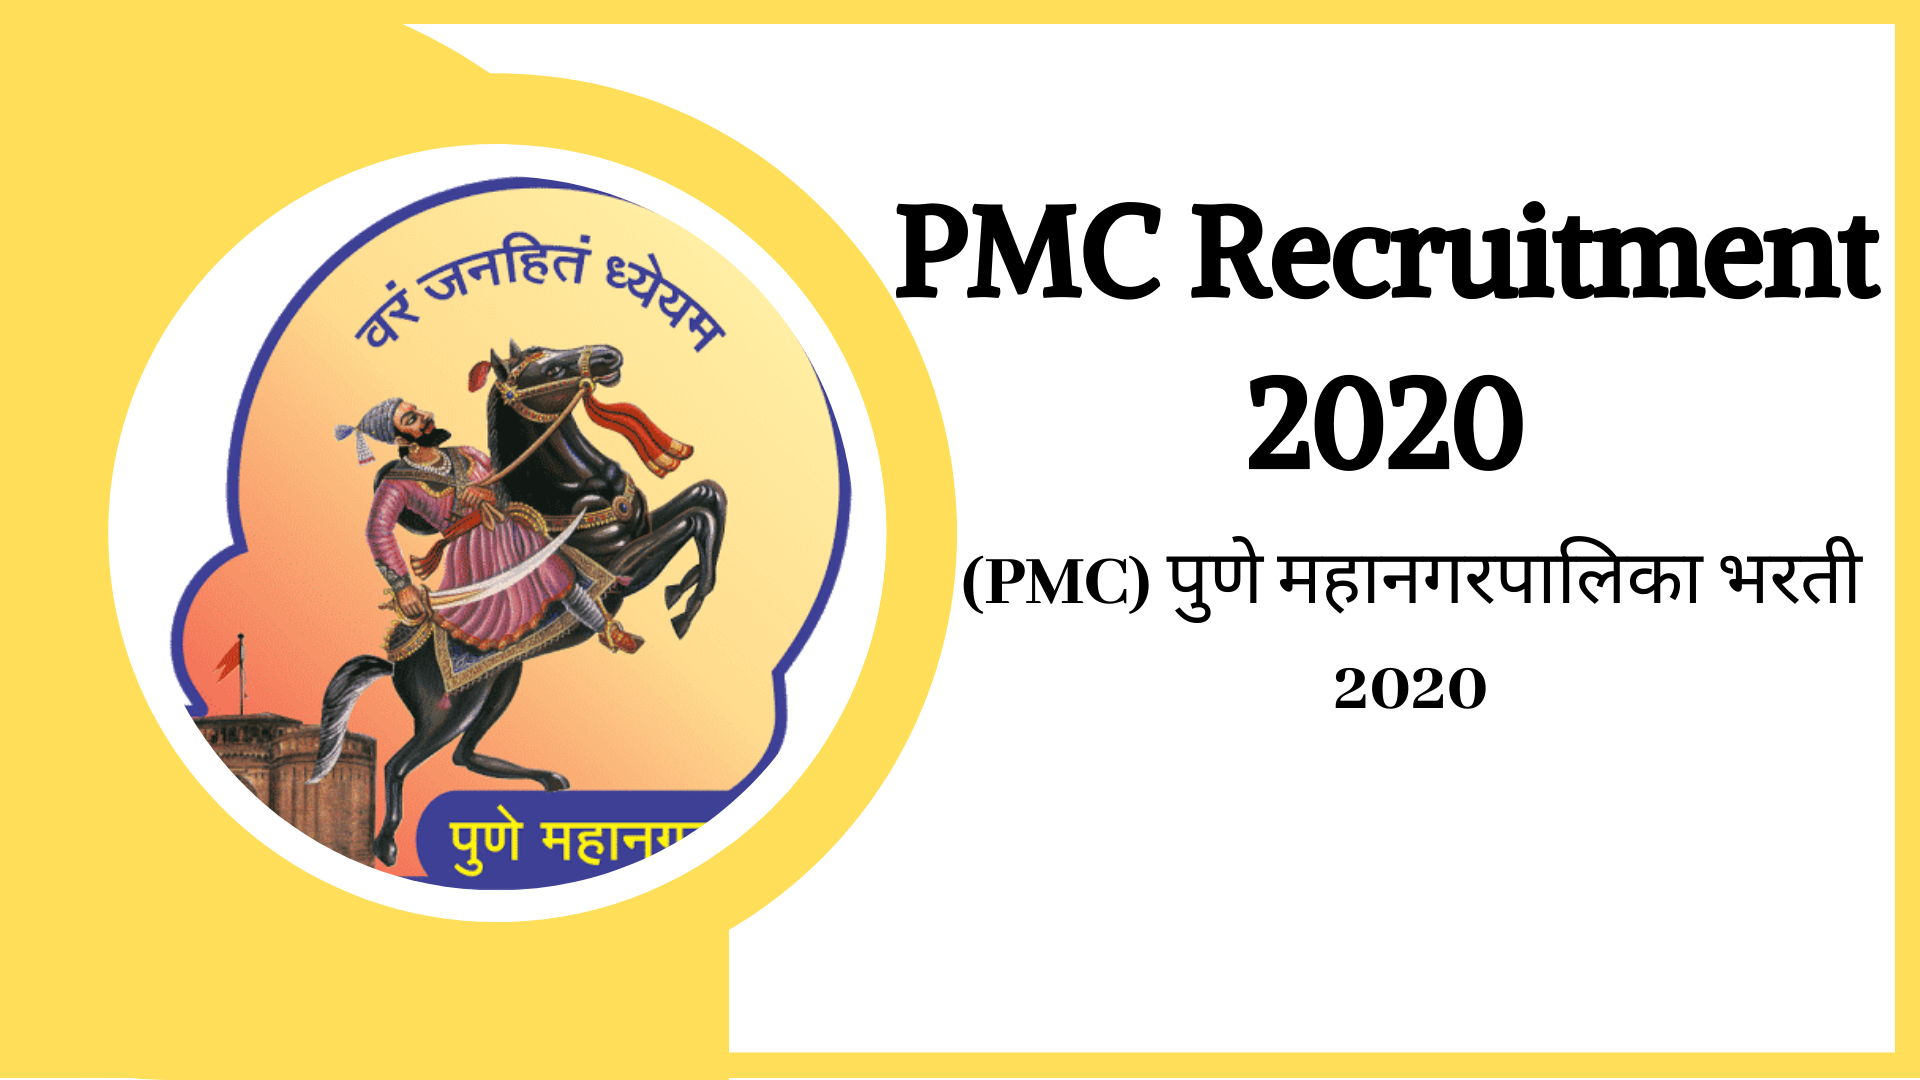 PMC Recruitment 2020